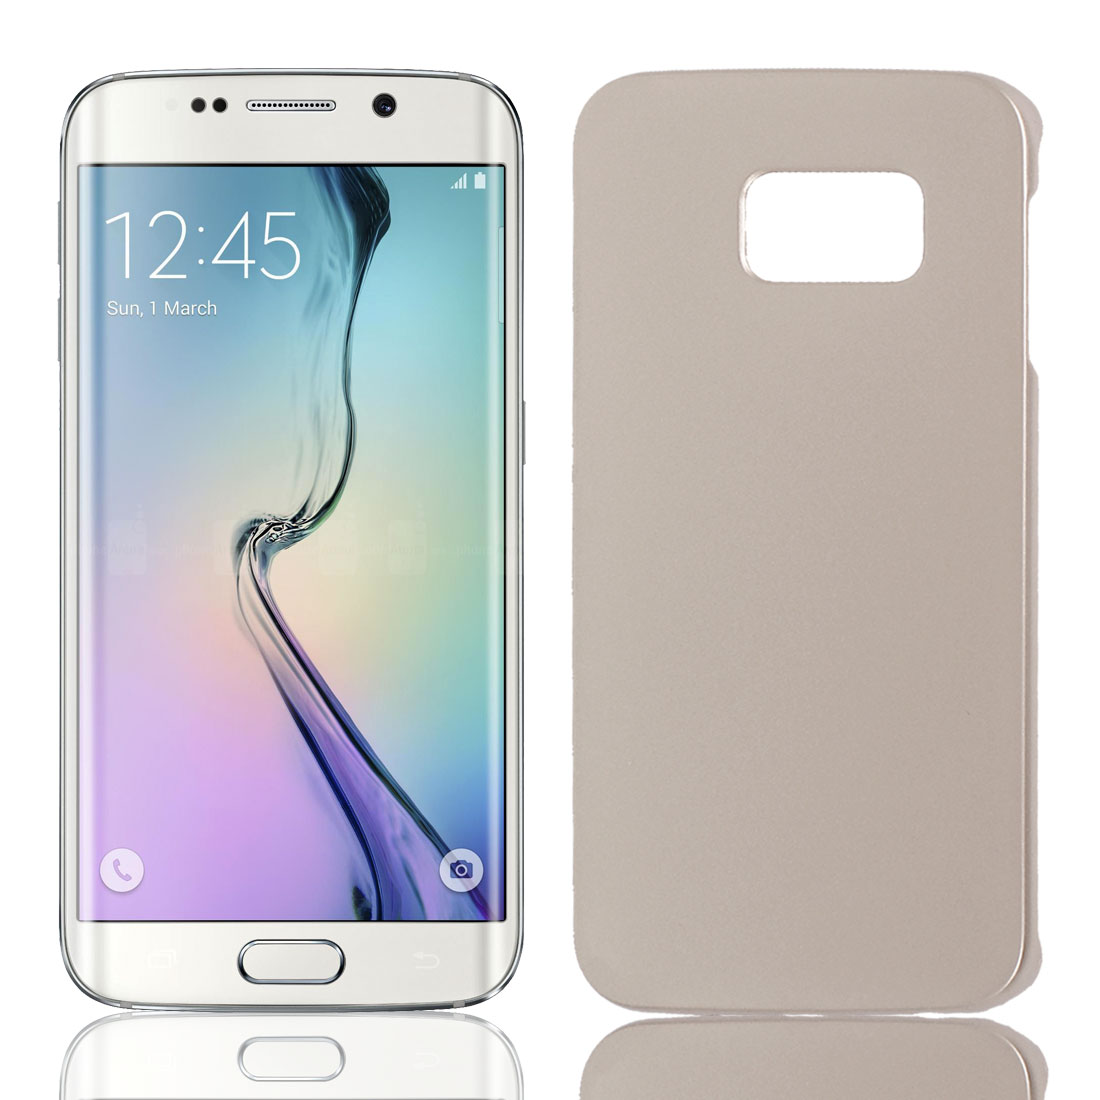 Gold Tone Hard Plastic Back Case Cover Phone Protective Shell Guard Skin for Galaxy S6 Edge